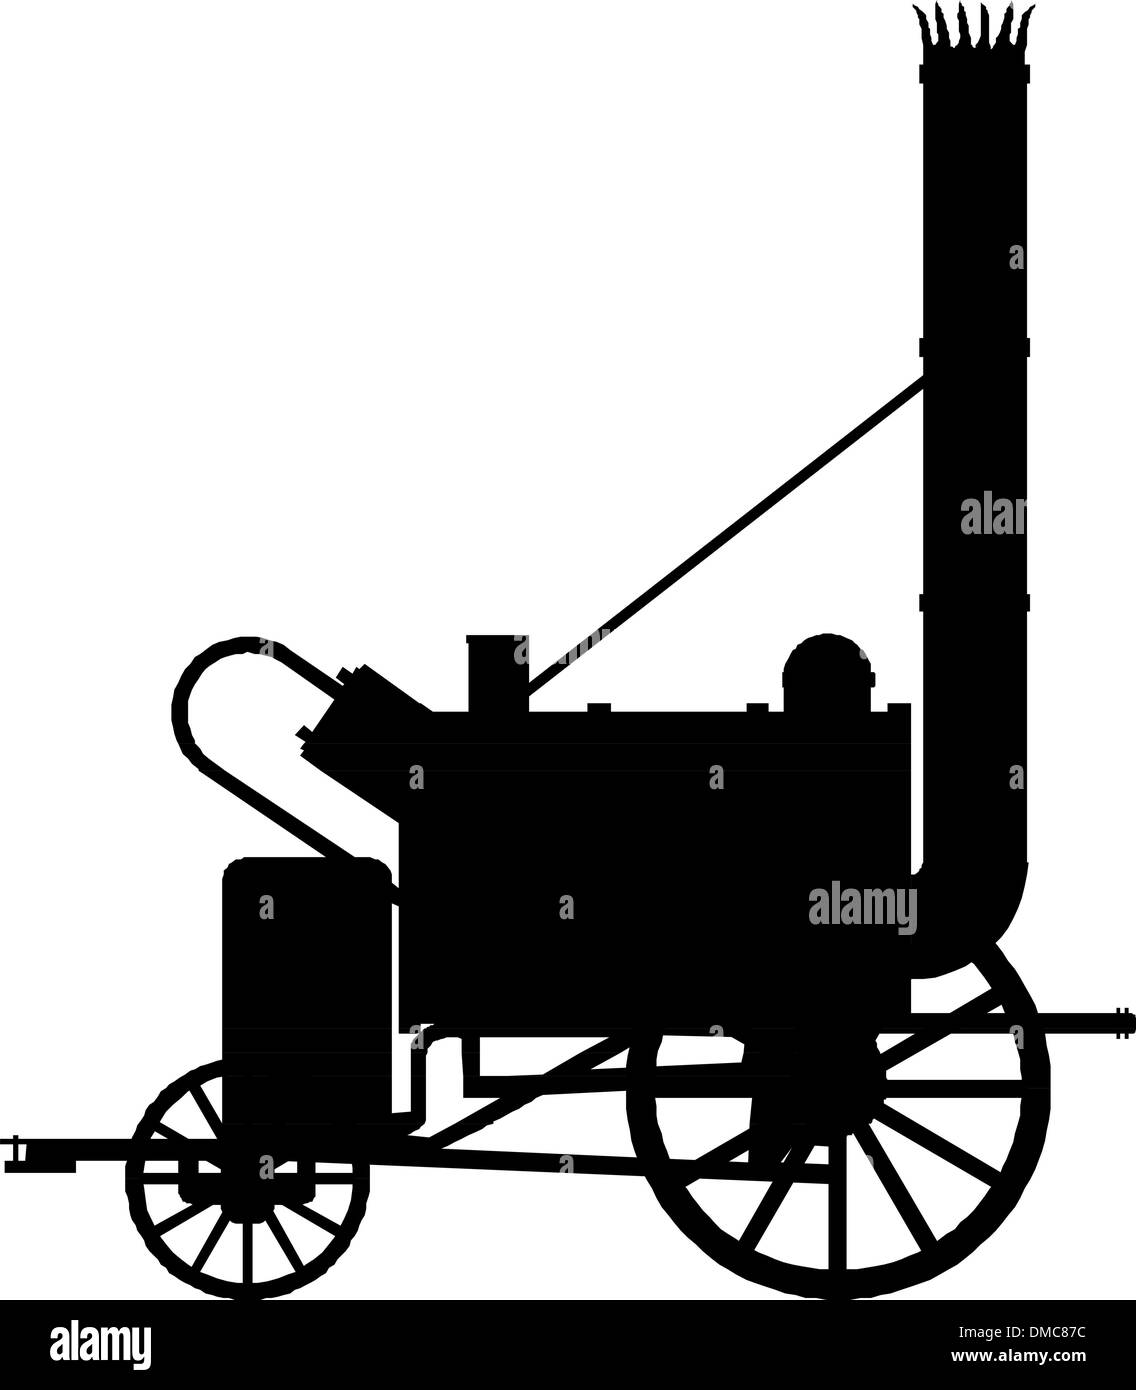 Vintage steam locomotive. - Stock Image